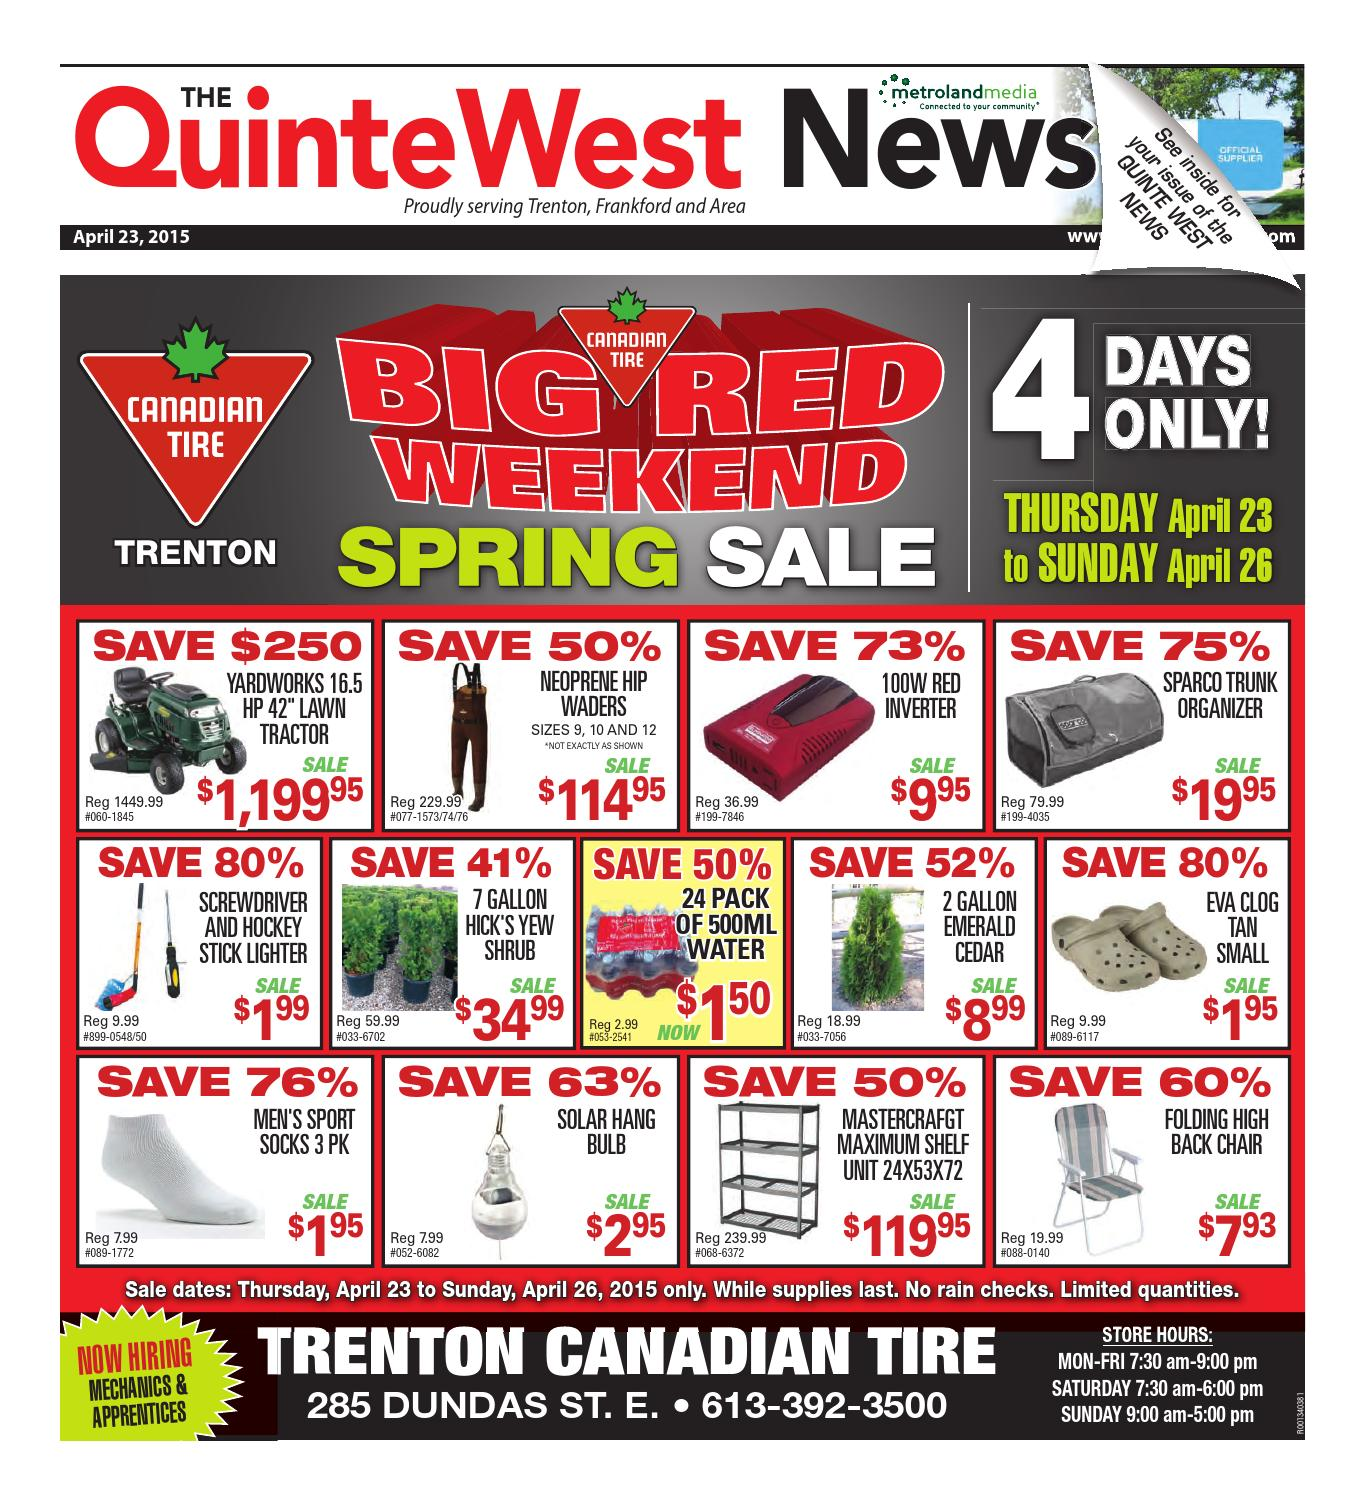 Quinte042315 by Metroland East - Quinte West News - issuu